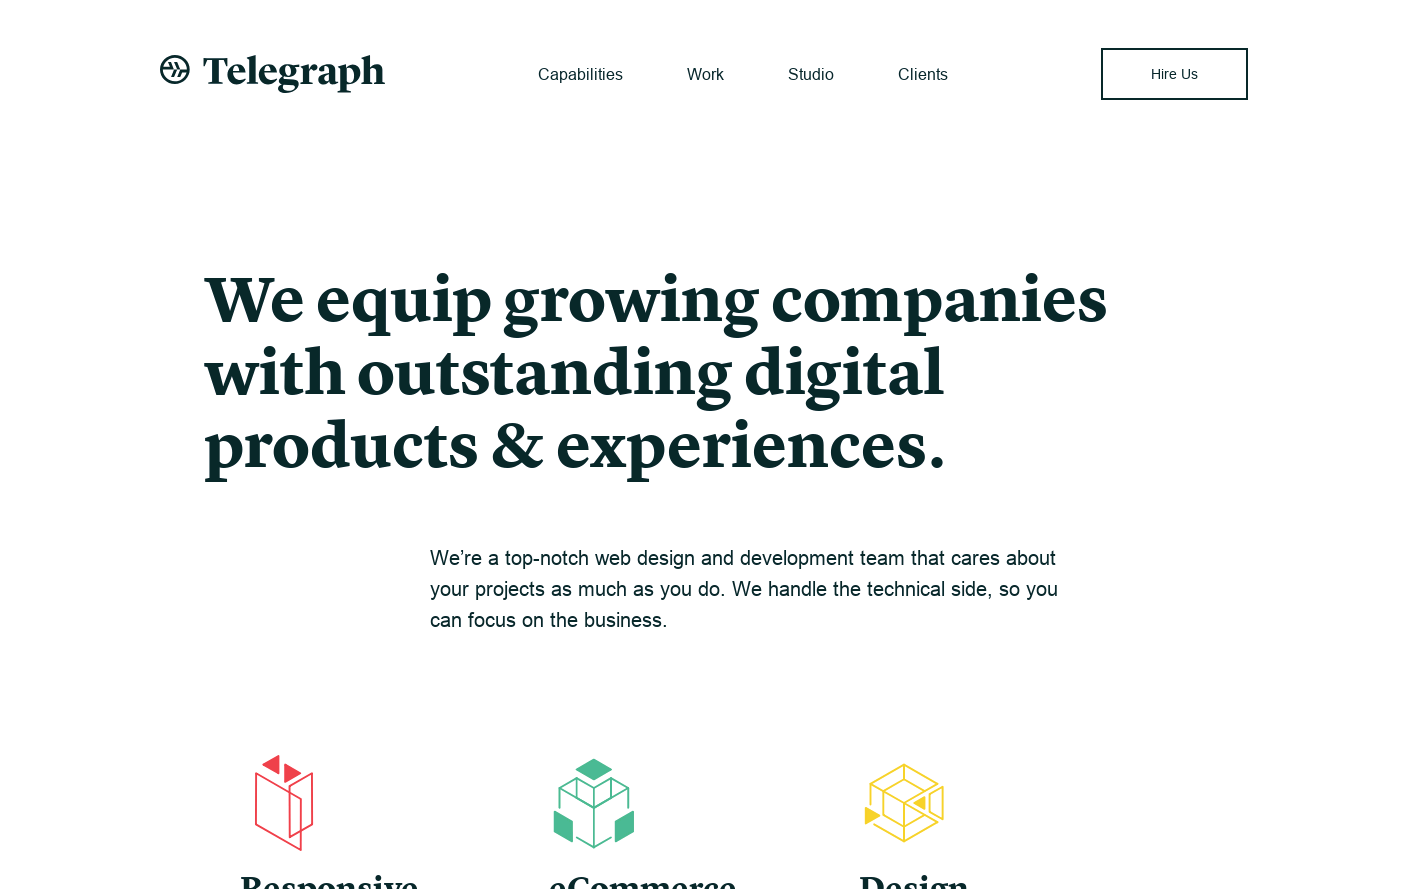 Telegraph | A top-notch web design and development team that cares